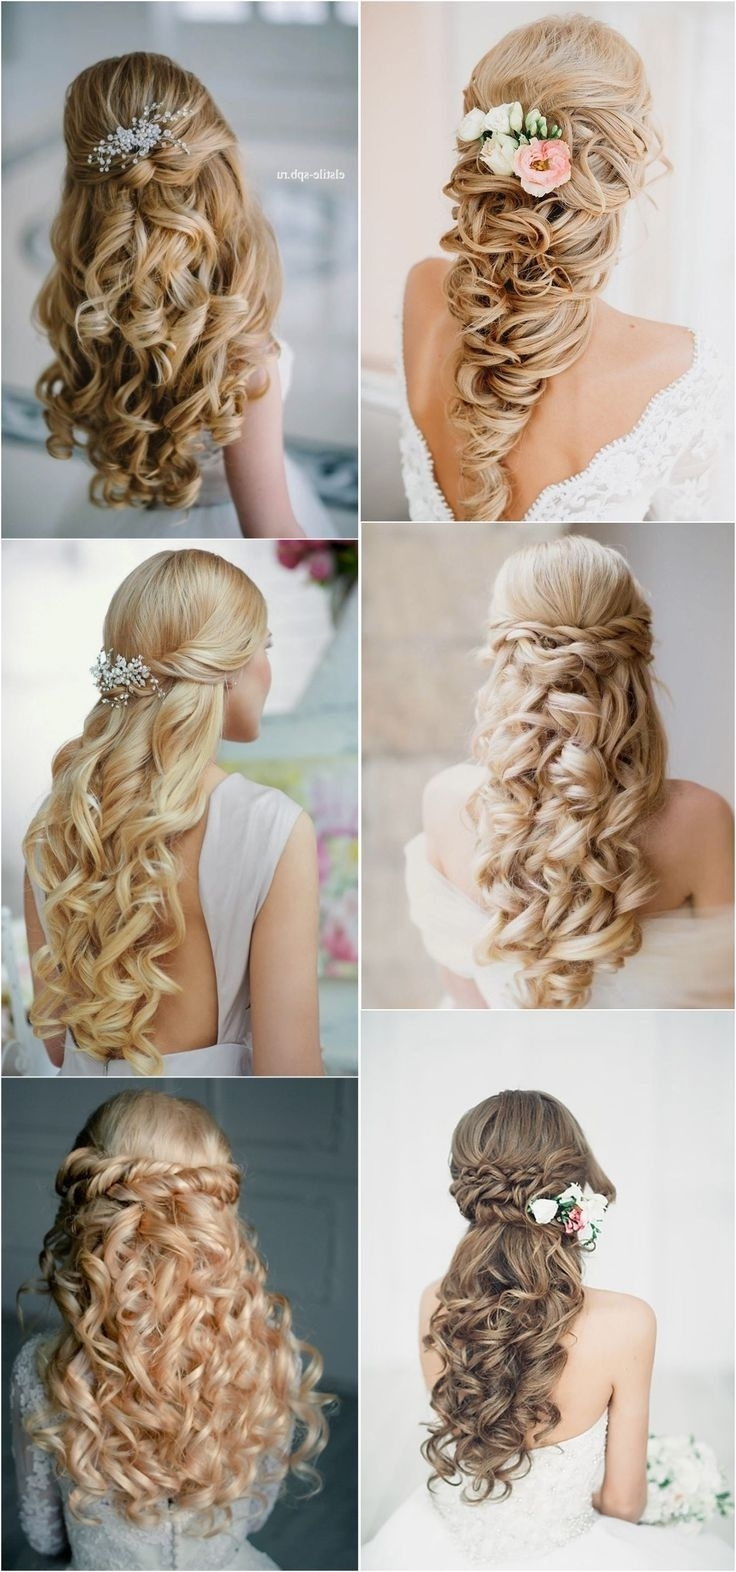 Latest Elstile Wedding Hairstyles For Long Hair Within Bridal Hairstyles : 40 Stunning Half Up Half Down Wedding Hairstyles (View 3 of 15)